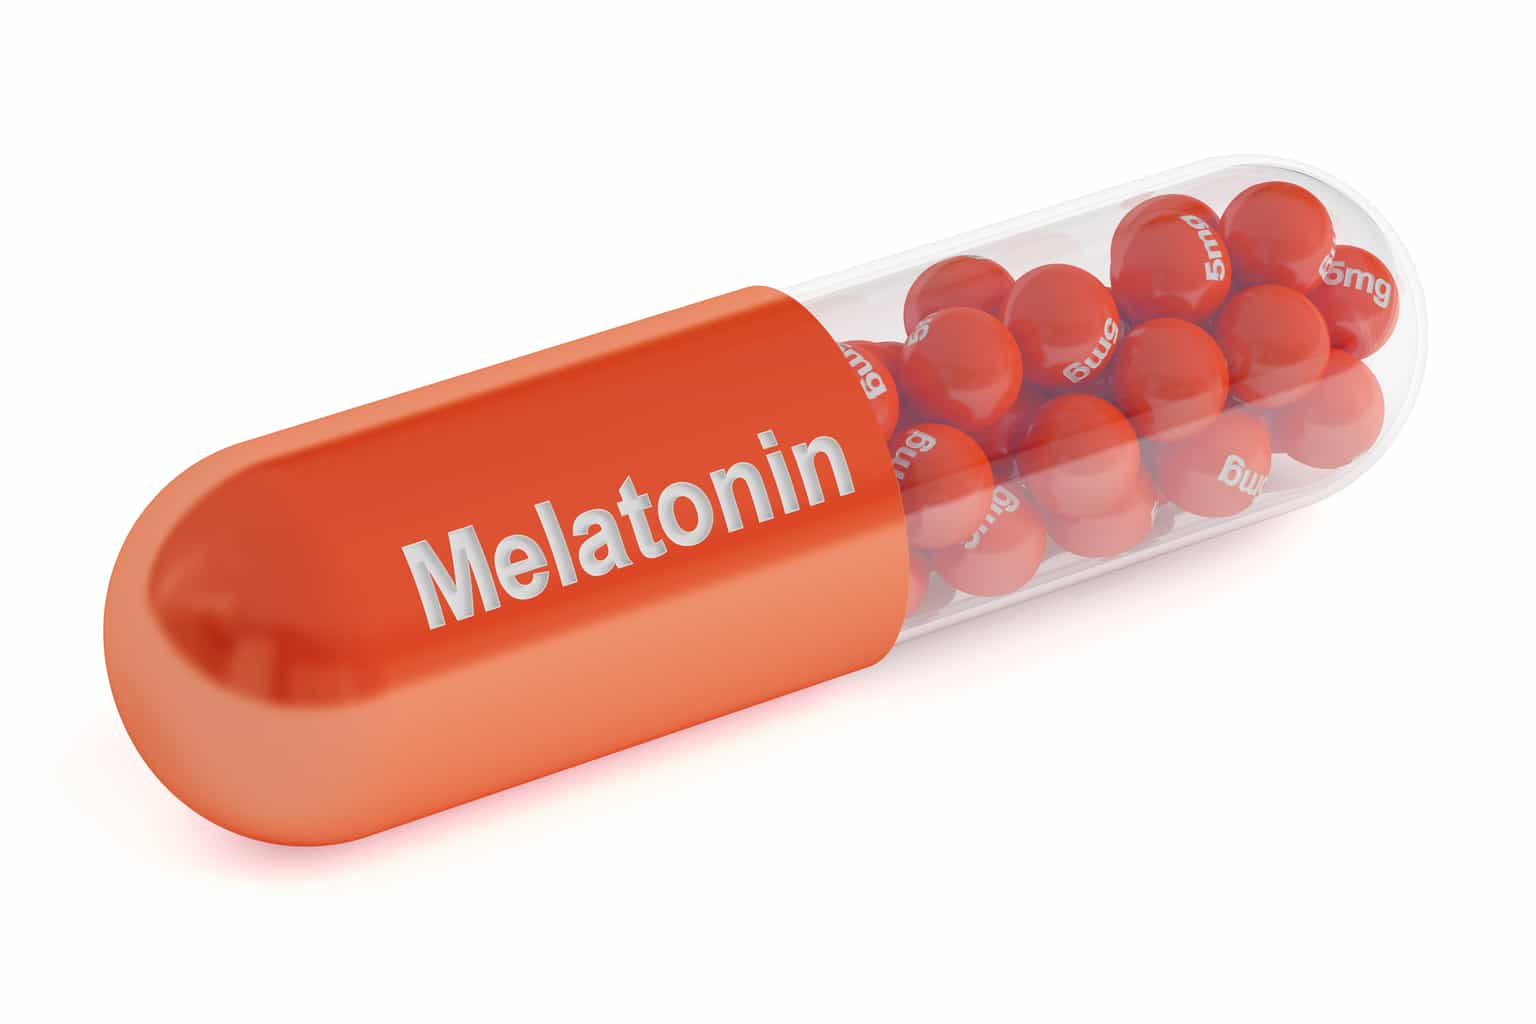 Serotonin, Melatonin, and Blood Pressure